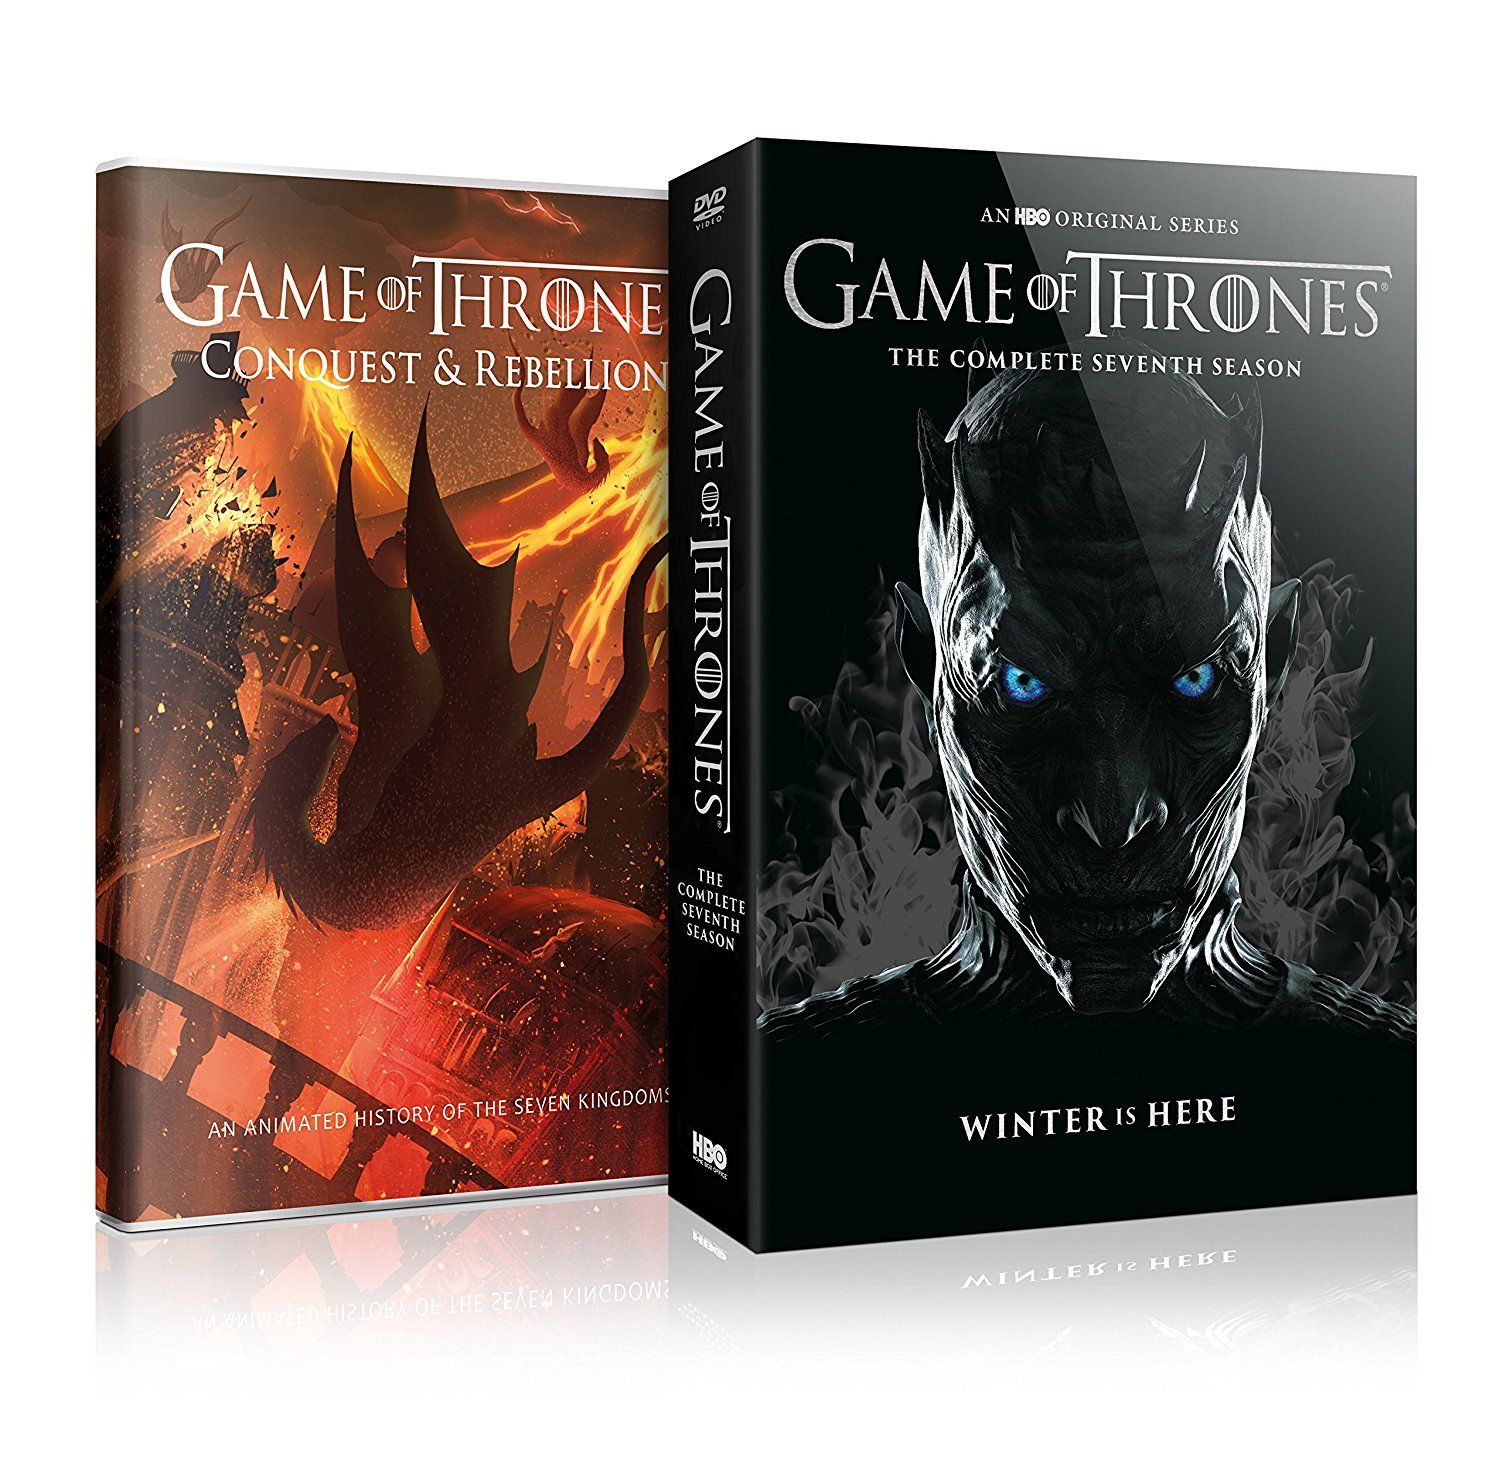 Game of Thrones Season 7 DVD Season 7, Hbo original